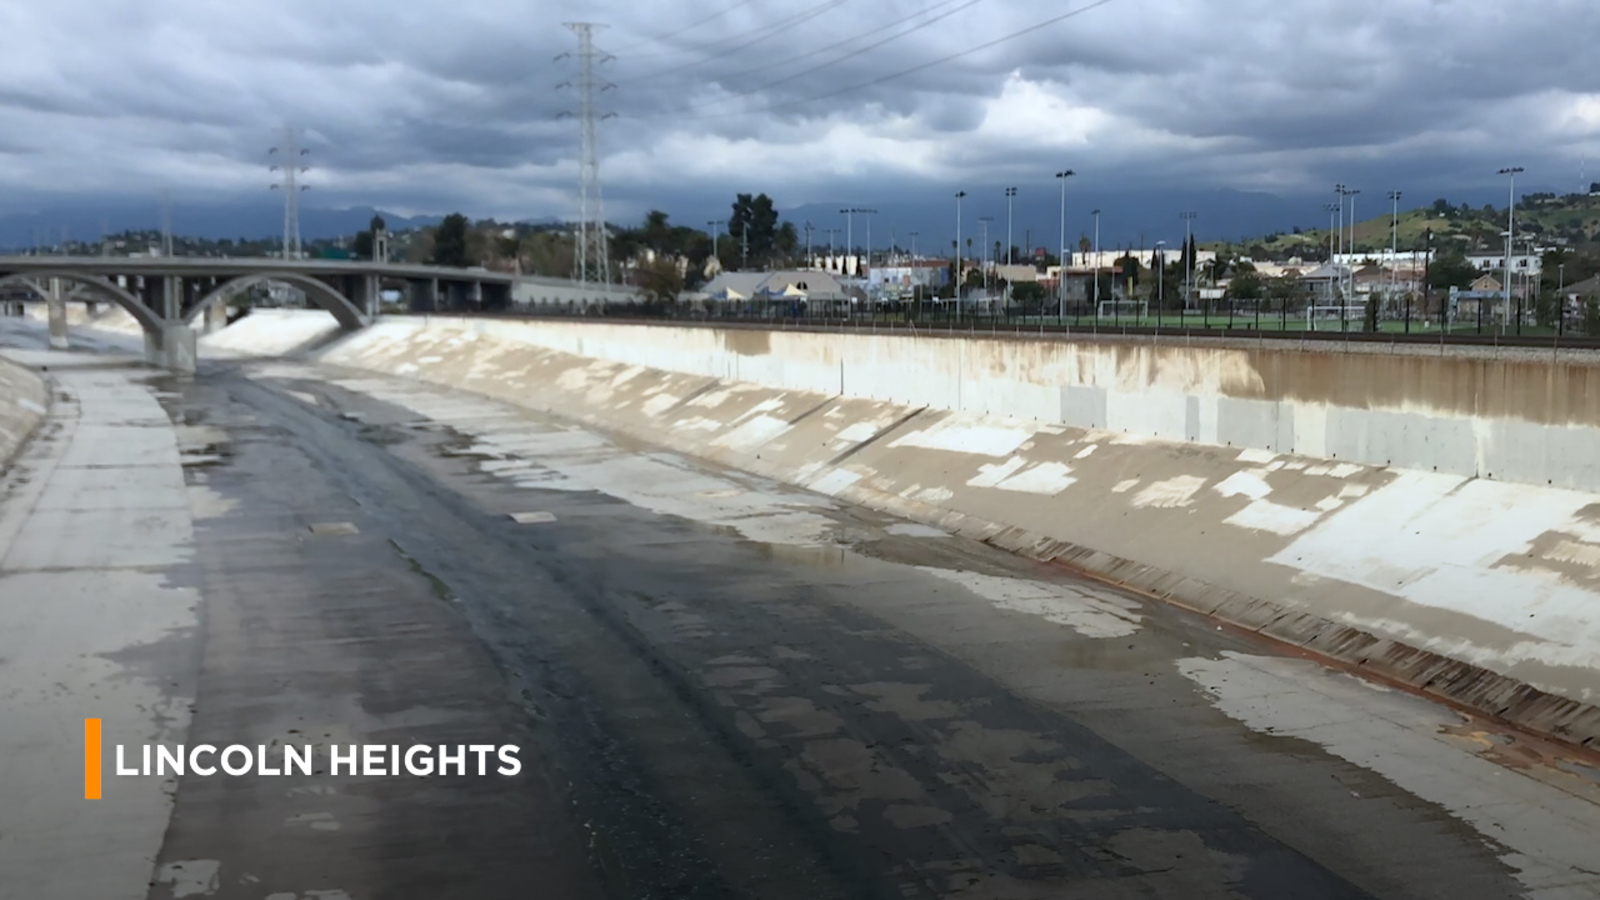 Lincoln Heights park's green design helps improve LA's water quality